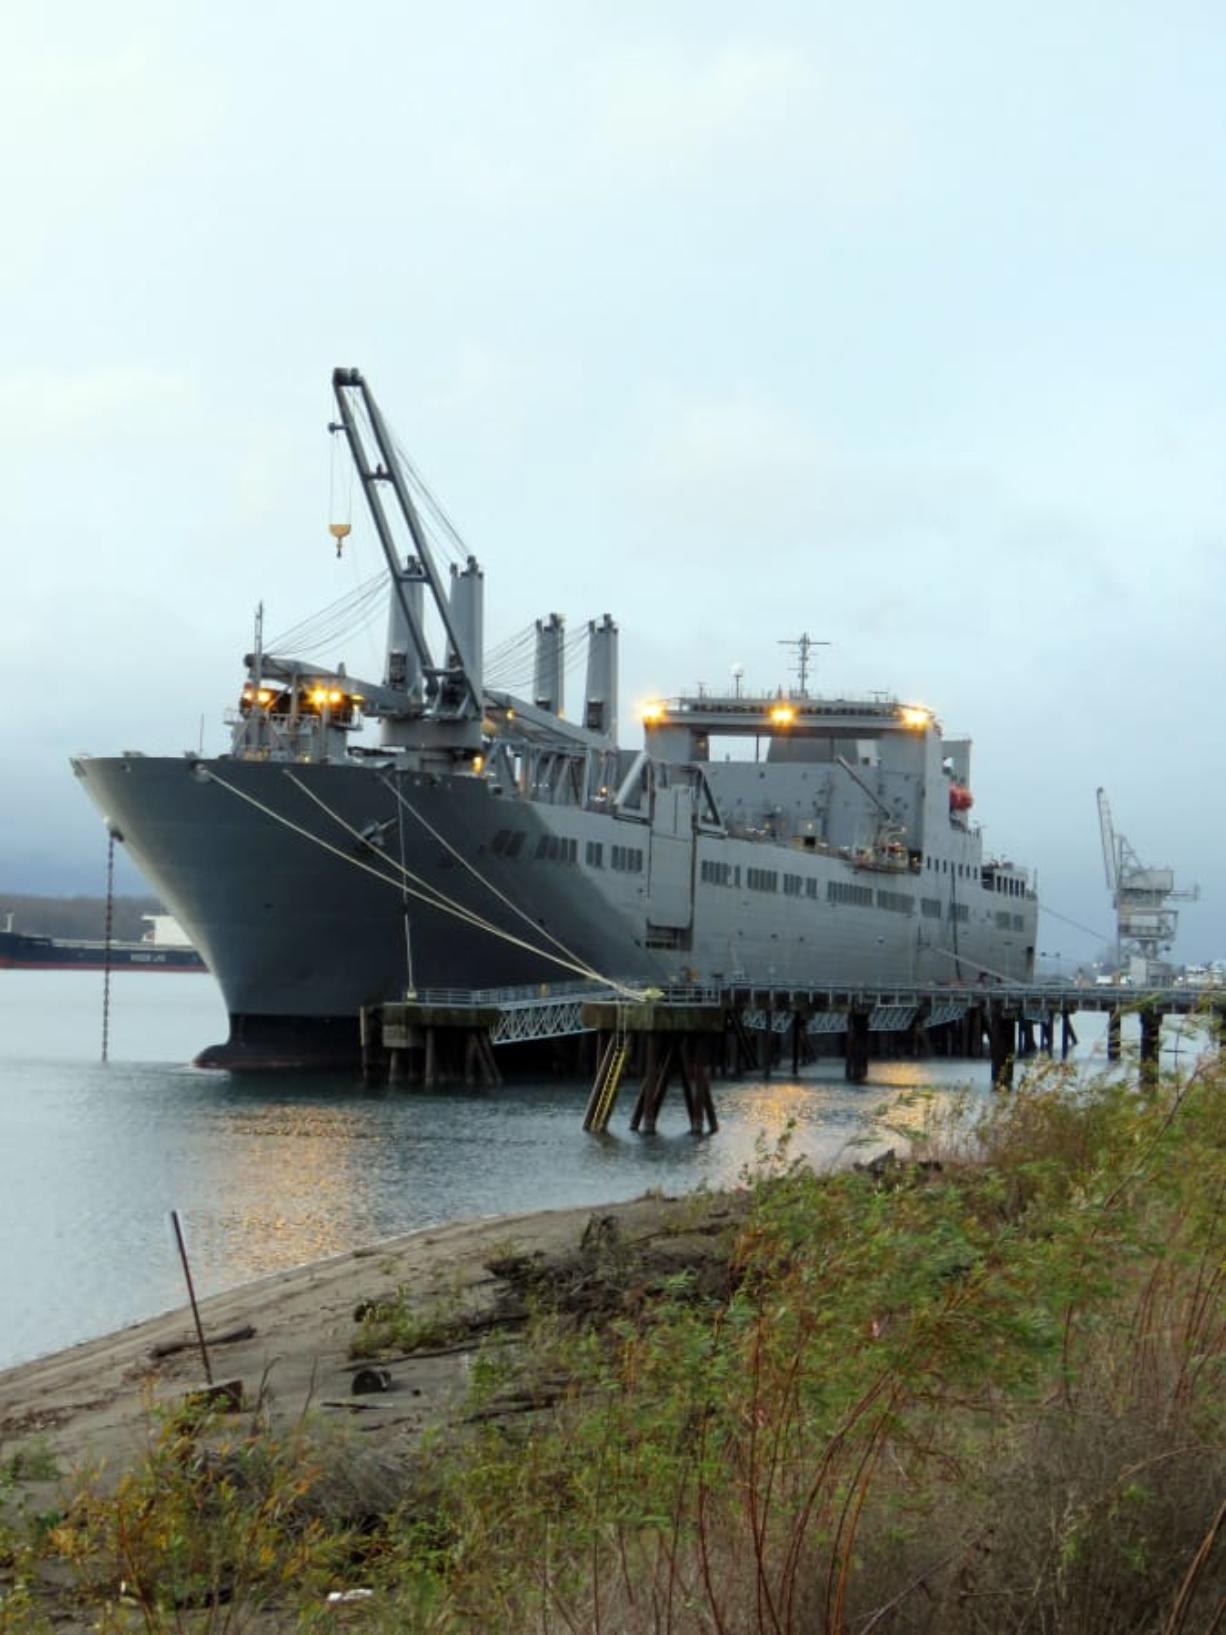 FRUIT VALLEY: The USNS Fisher, a 951-foot-long Military Sealife Command vessel, arrived at the Port of Vancouver on Dec.